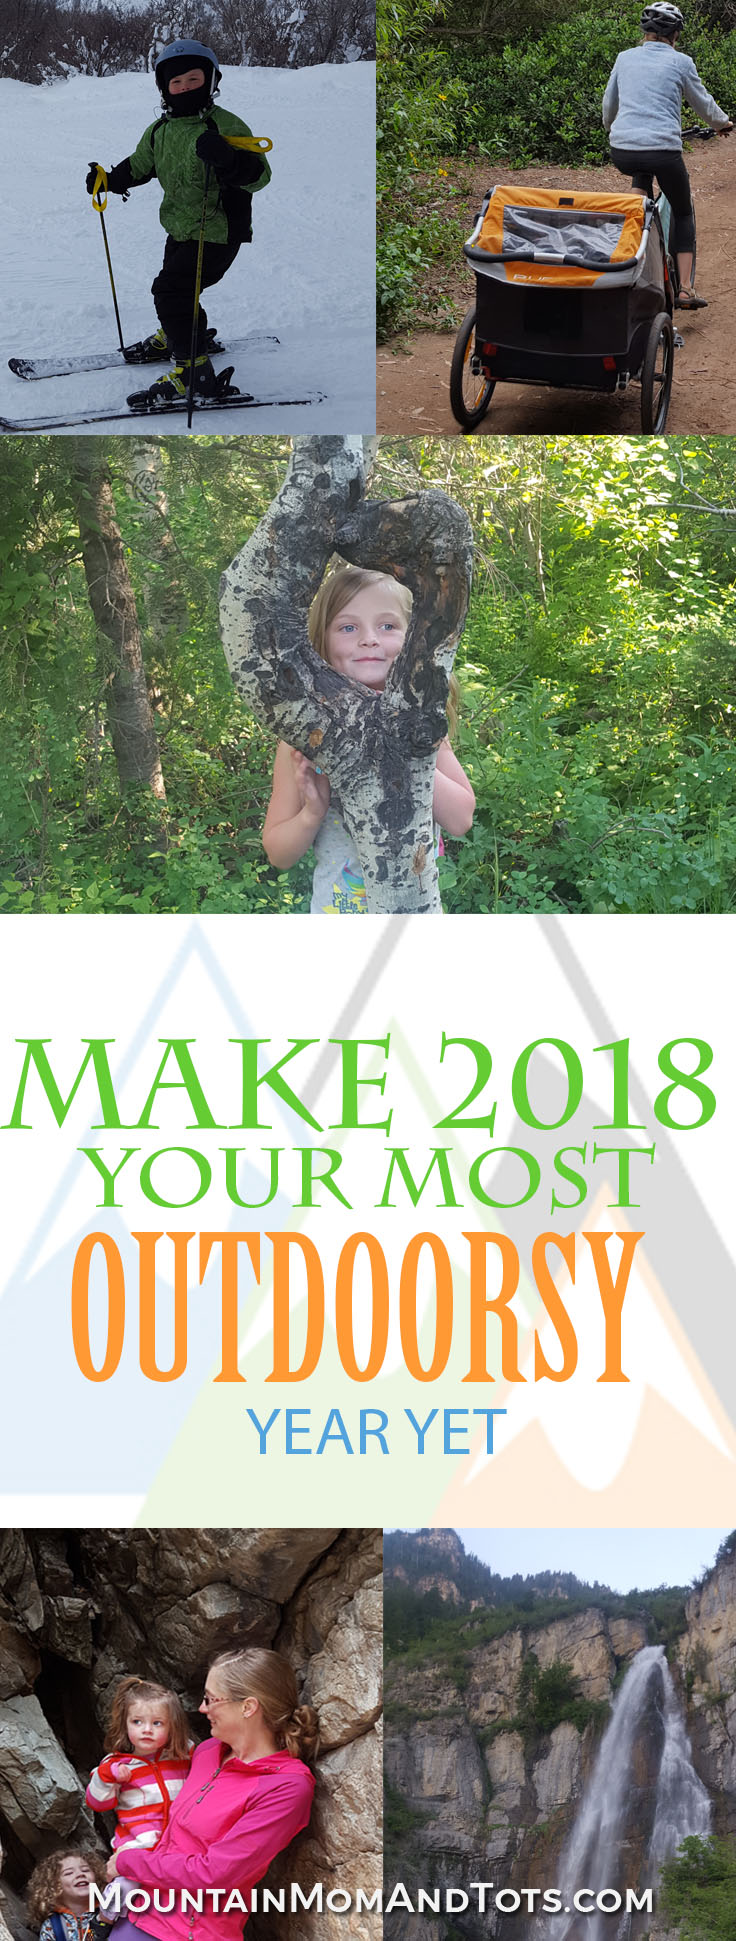 Make 2018 Your Most Outdoorsy Year Yet